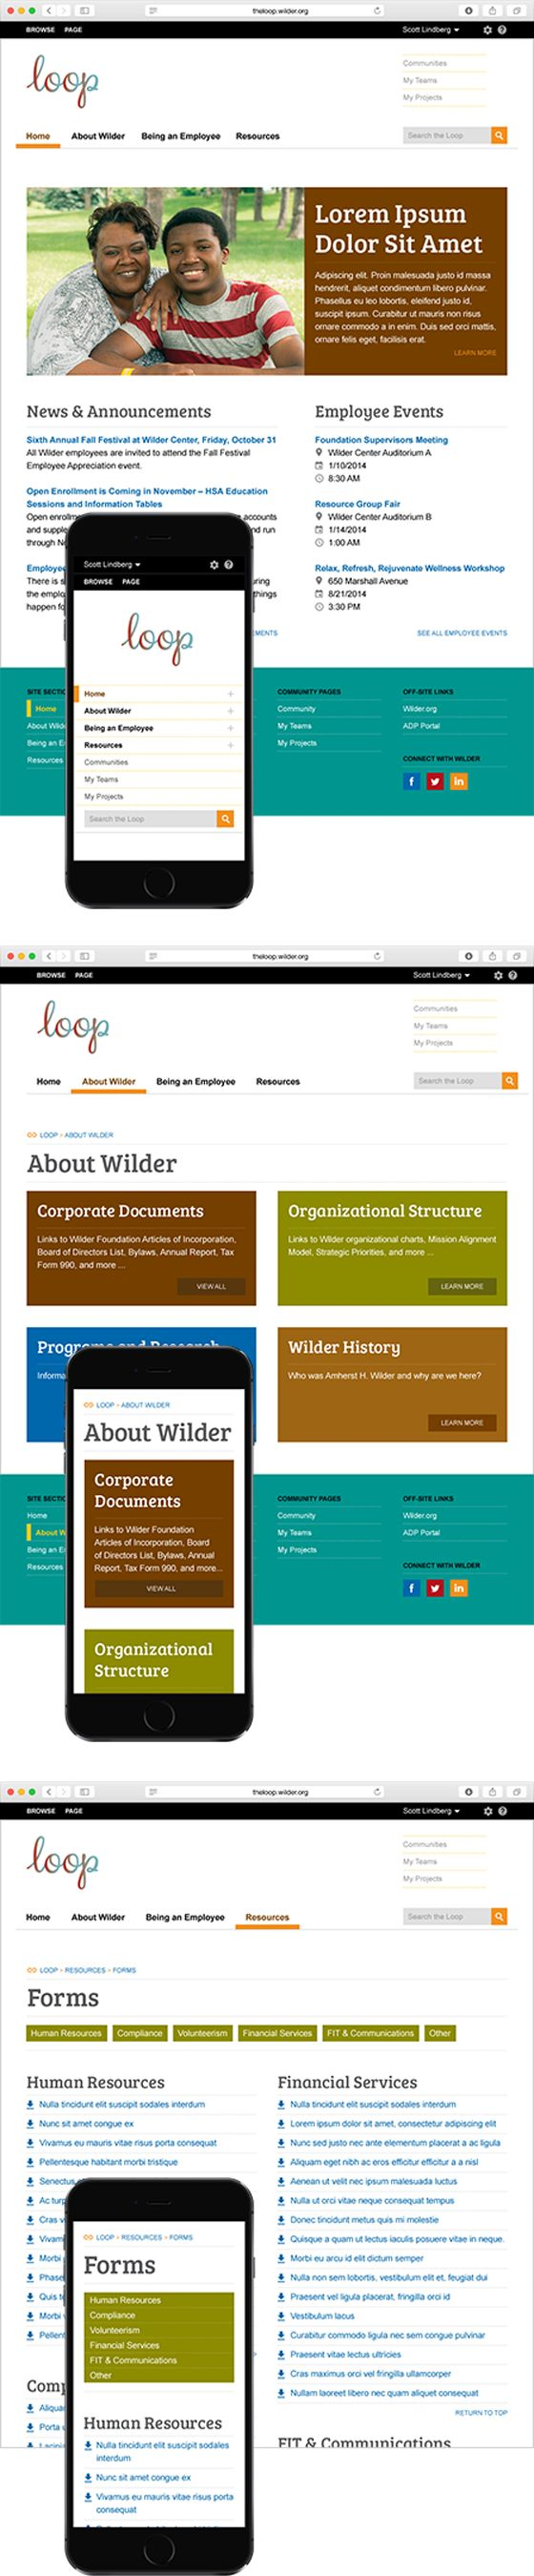 ideas about research companies the loop website for wilder research designed by the design company design website